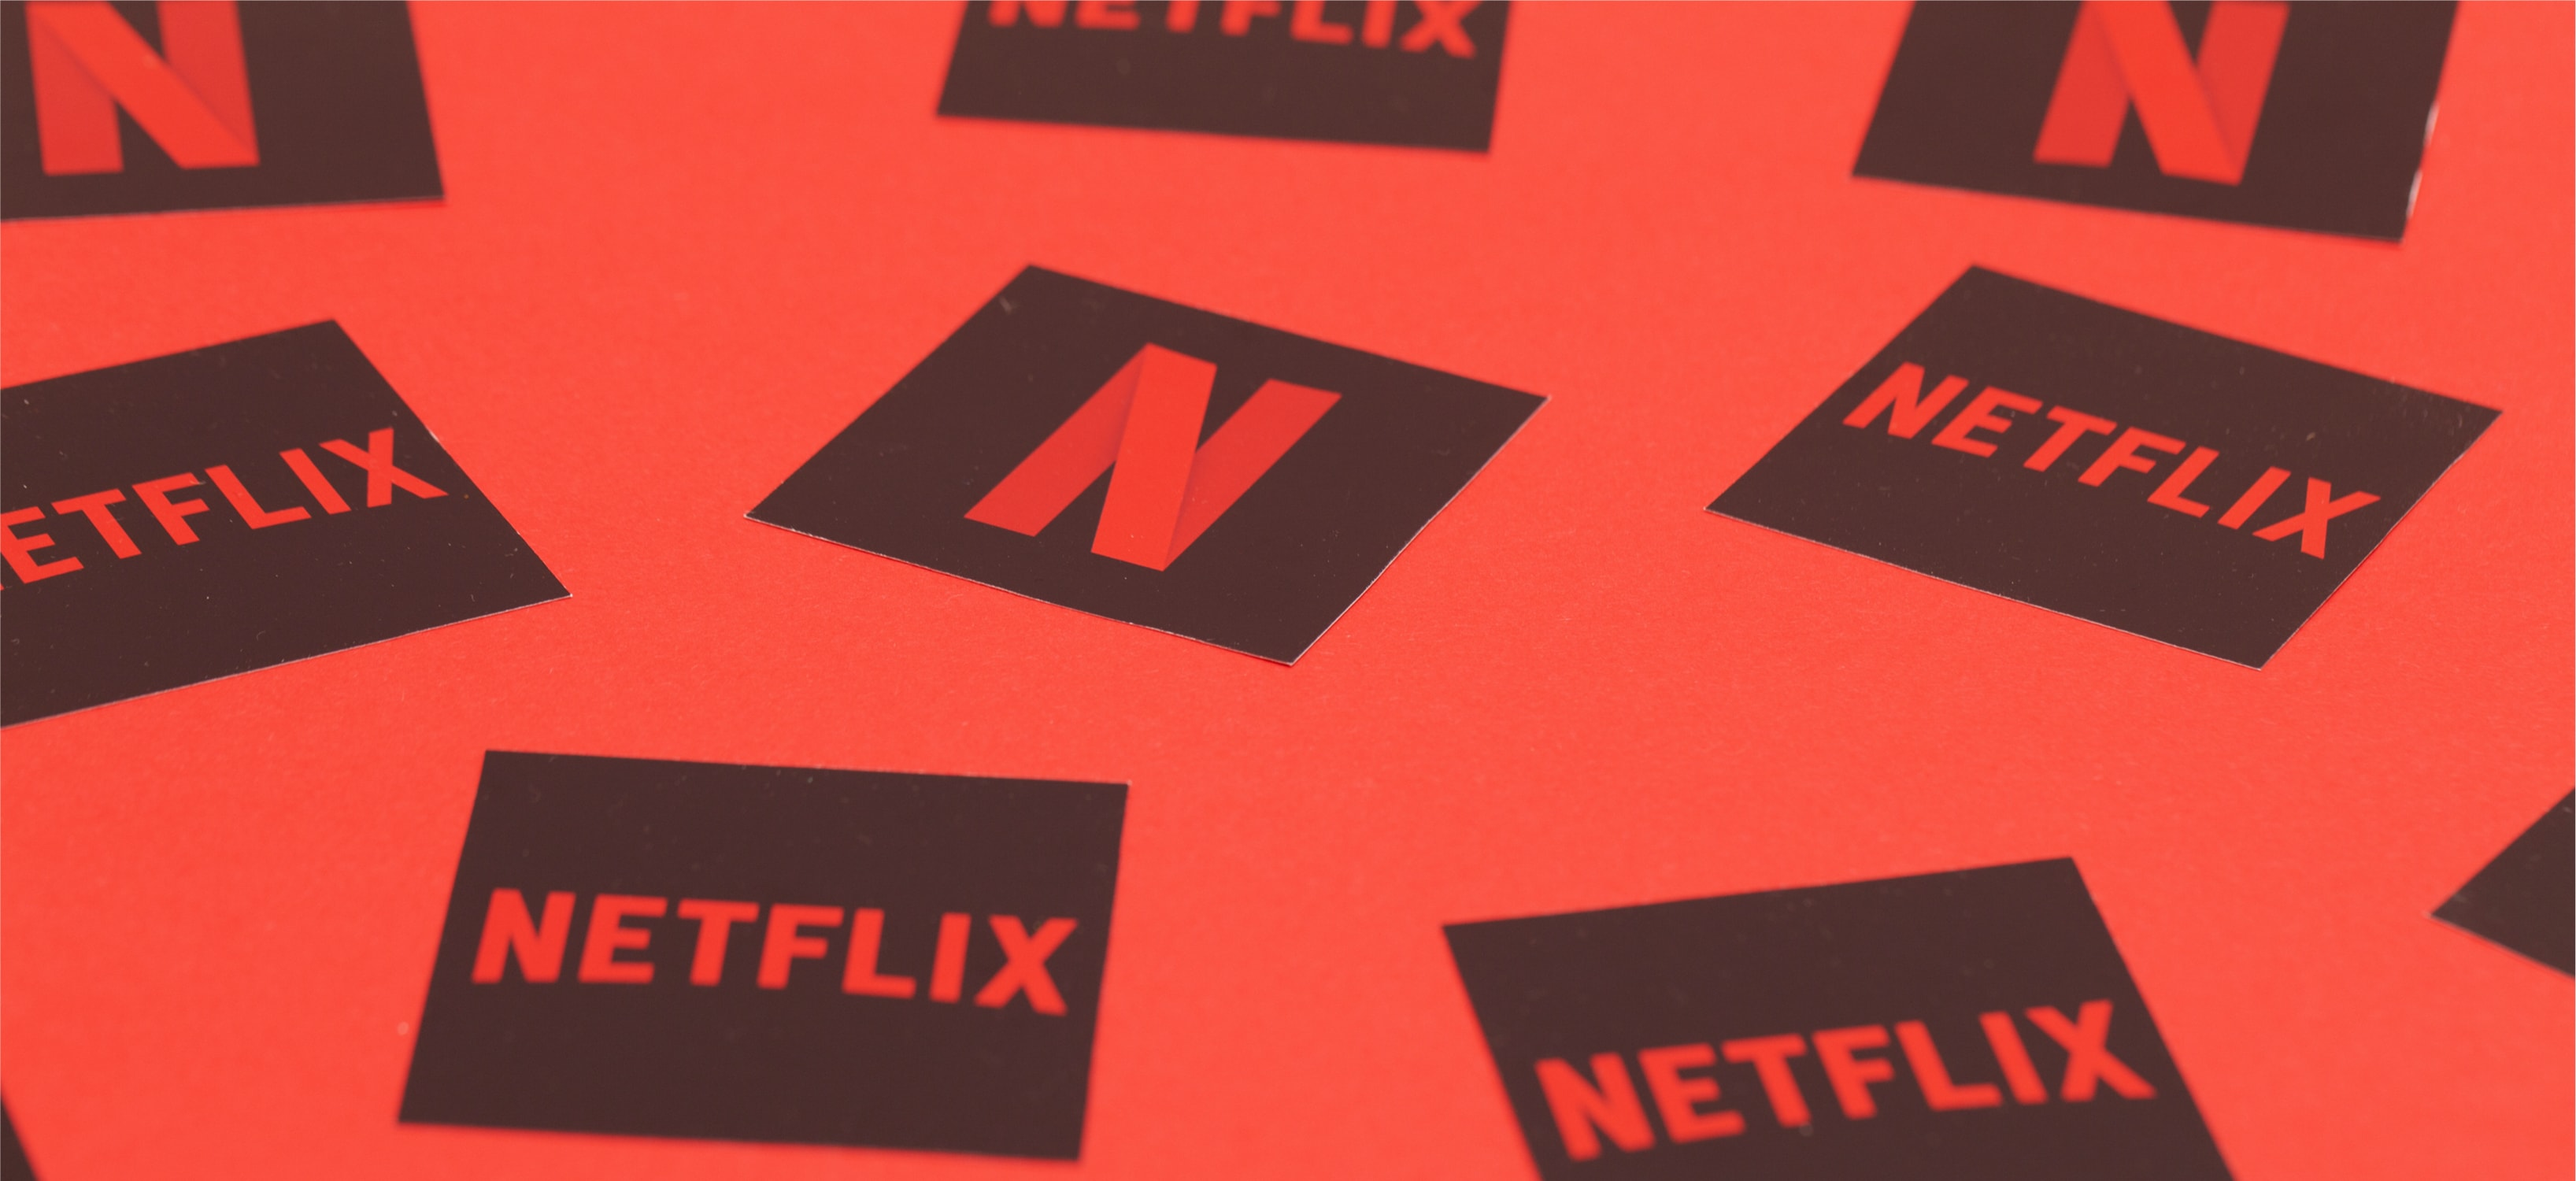 Netflix does not want money from inactive users, it will delete zombie accounts